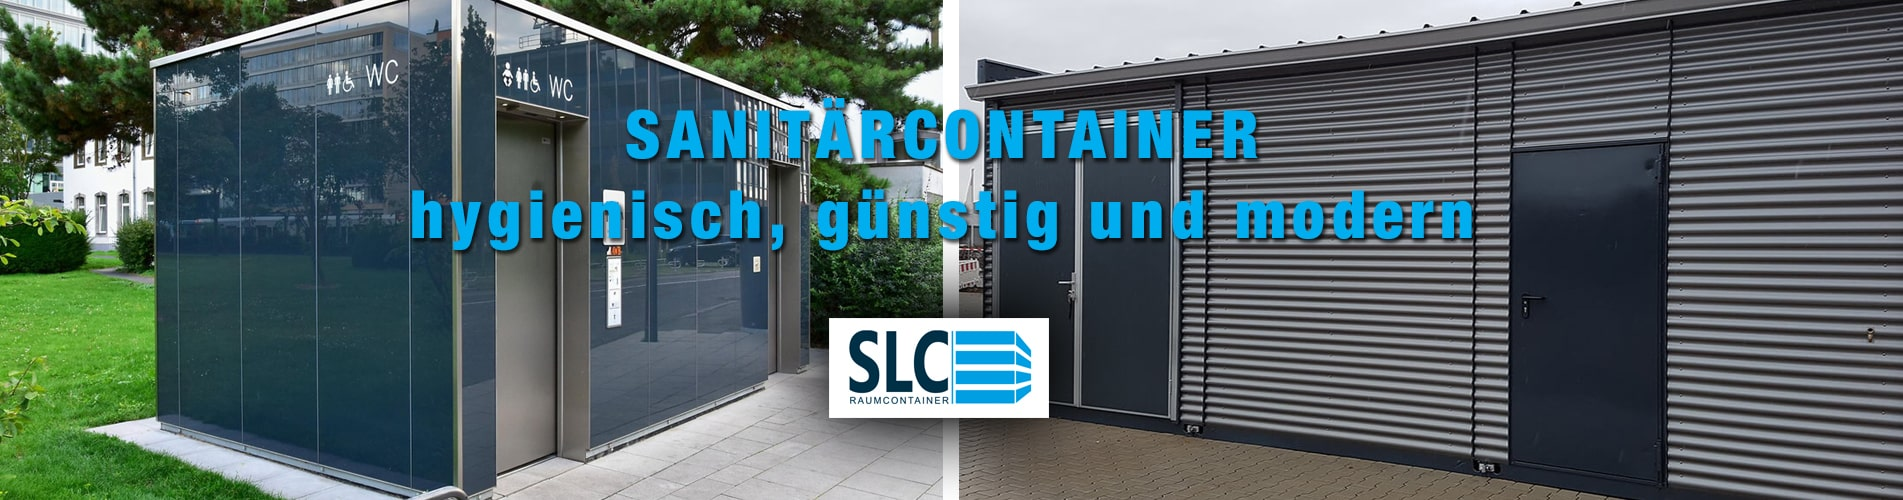 Sanitaercontainer